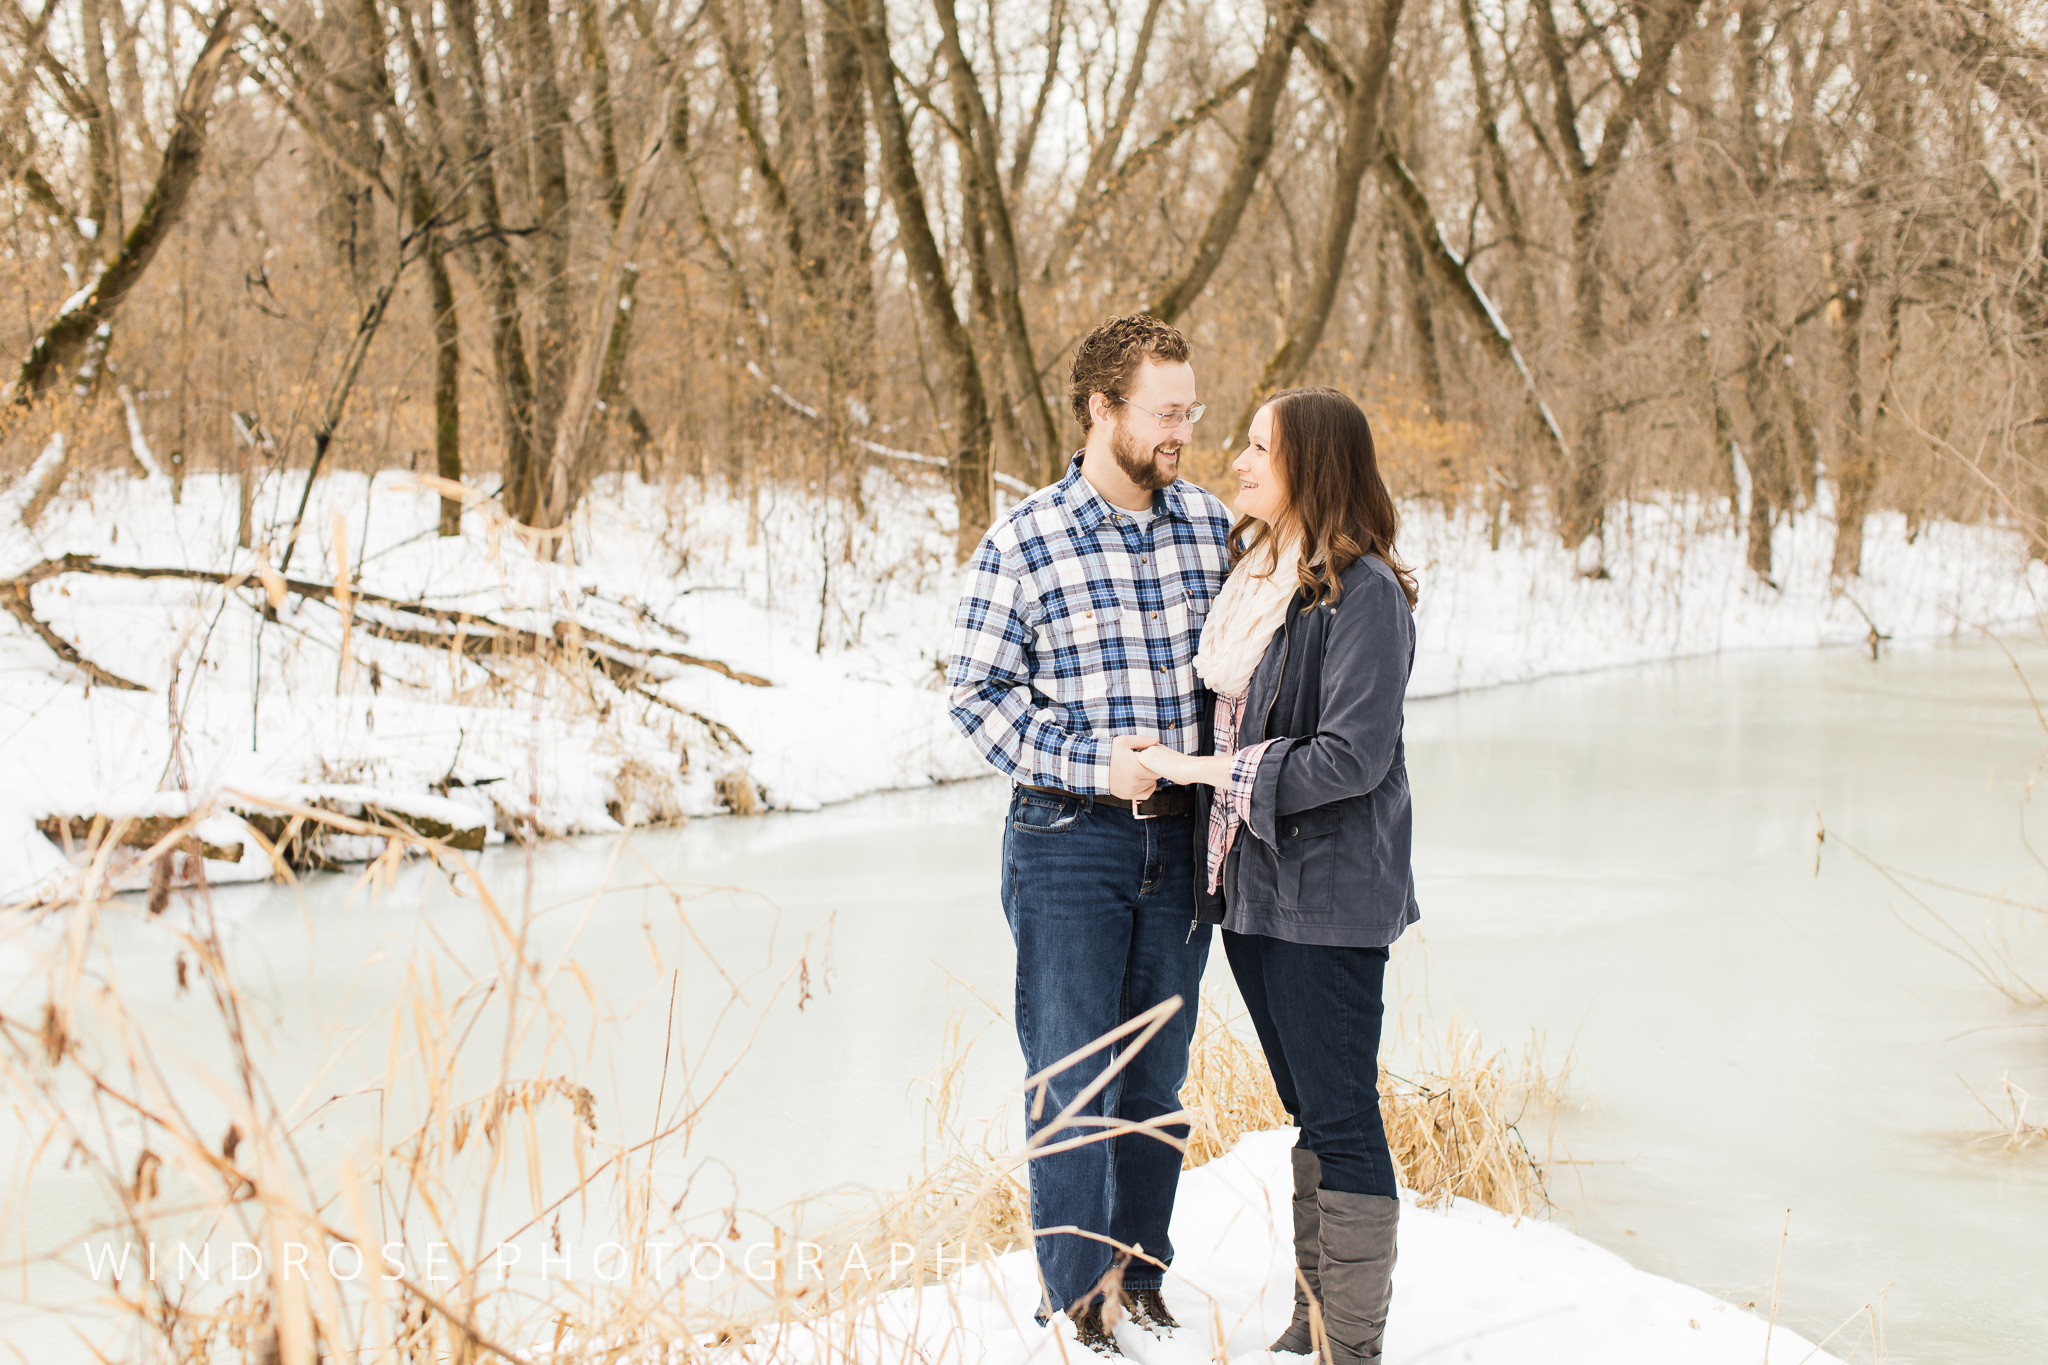 Quarry-Hill-Winter-Engagement-Photo-Session-2.jpg